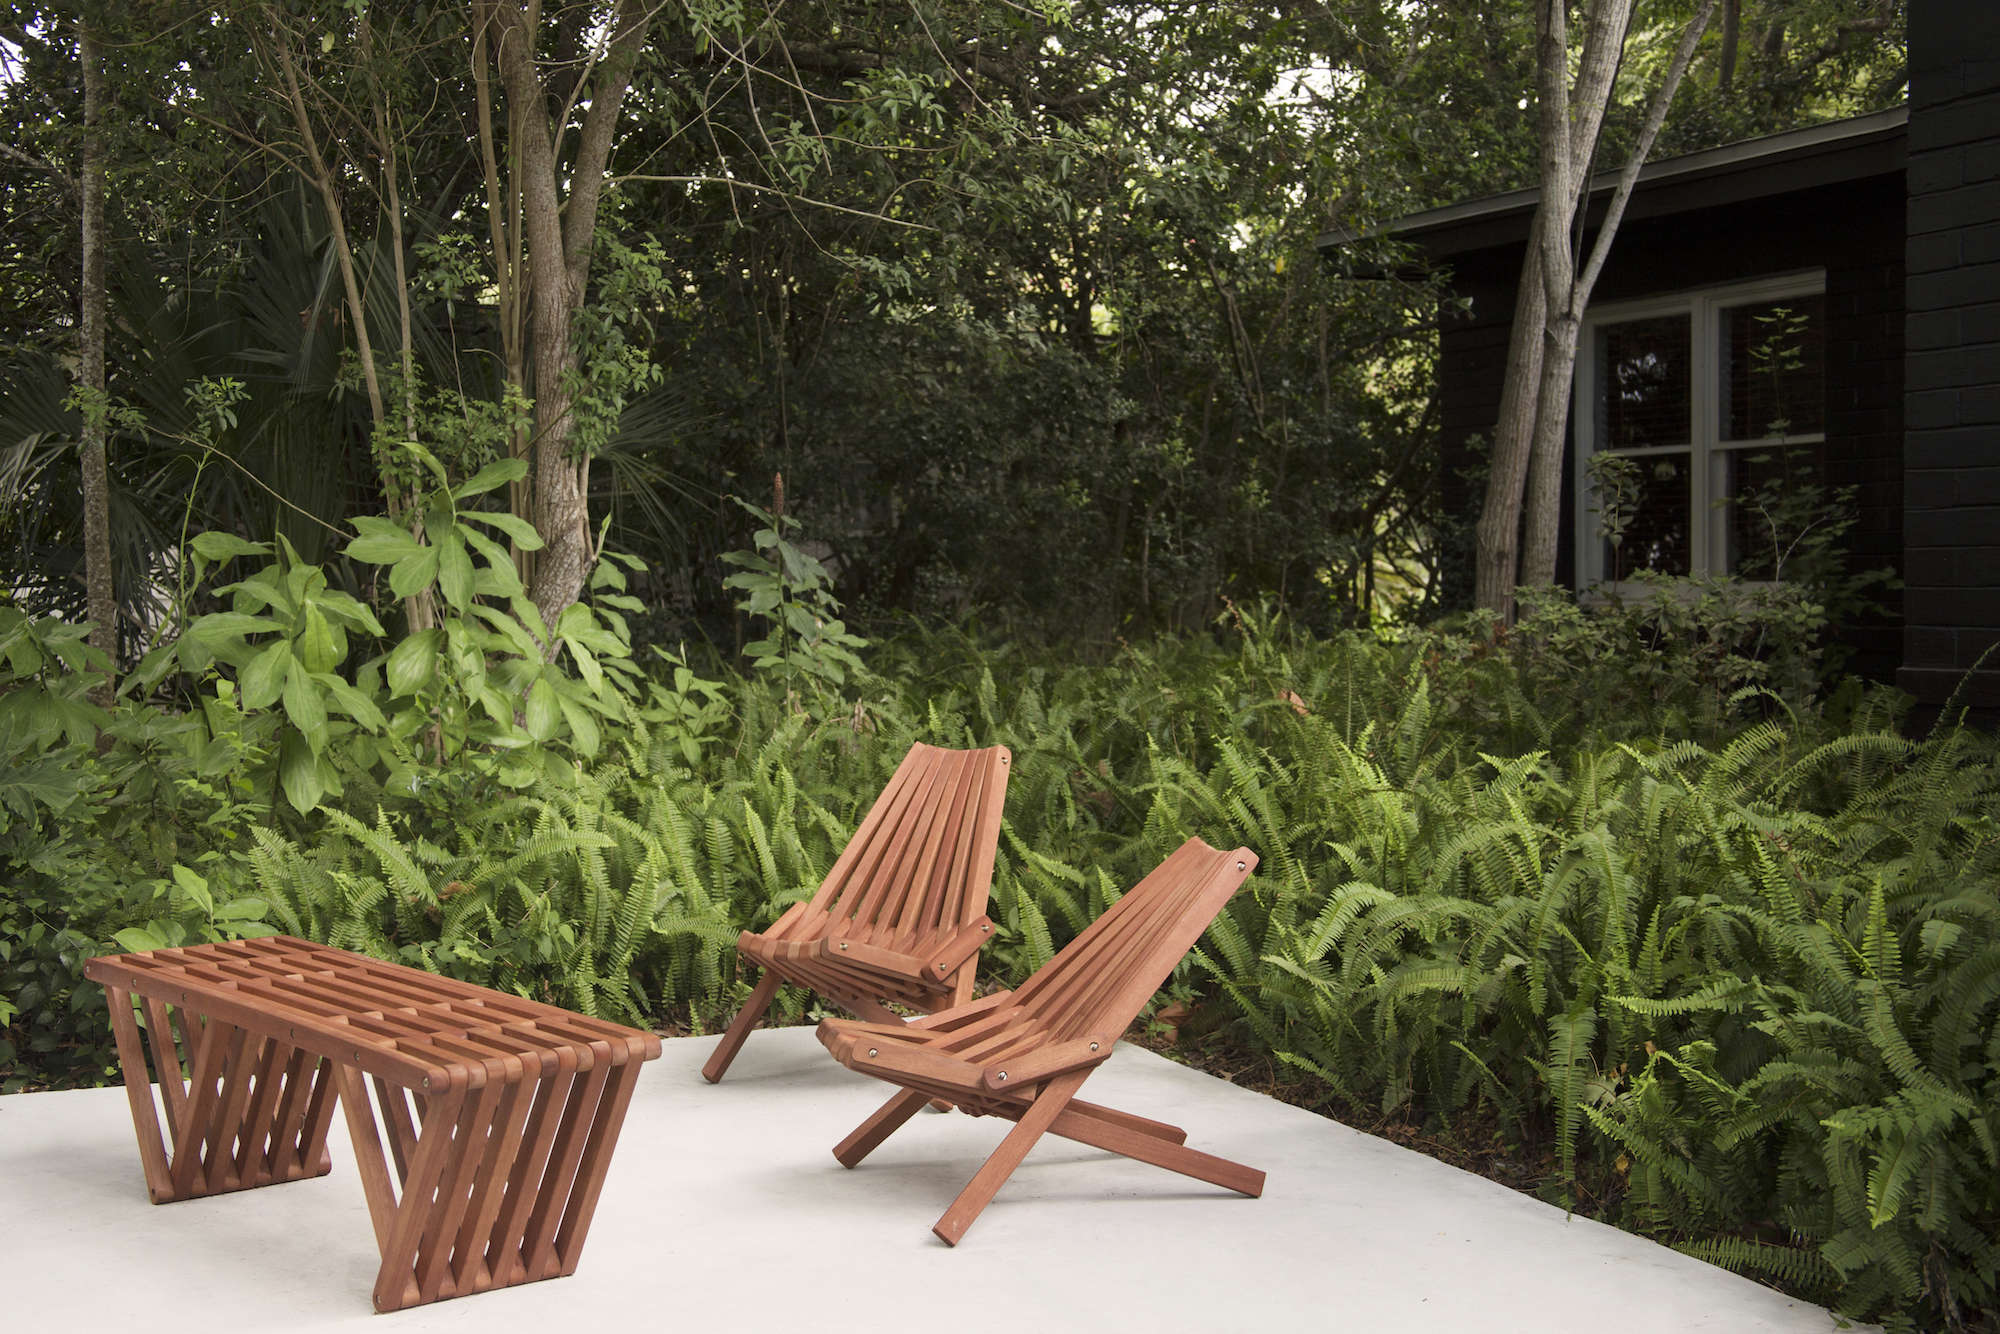 &#8\2\20;The natural setting of the house was one of the few things it had going for it when we bought it,&#8\2\2\1; said Deming. &#8\2\20;We aimed to leave the ferns and all of the growth as intact as possible.&#8\2\2\1; The patio furniture is from GloDea.